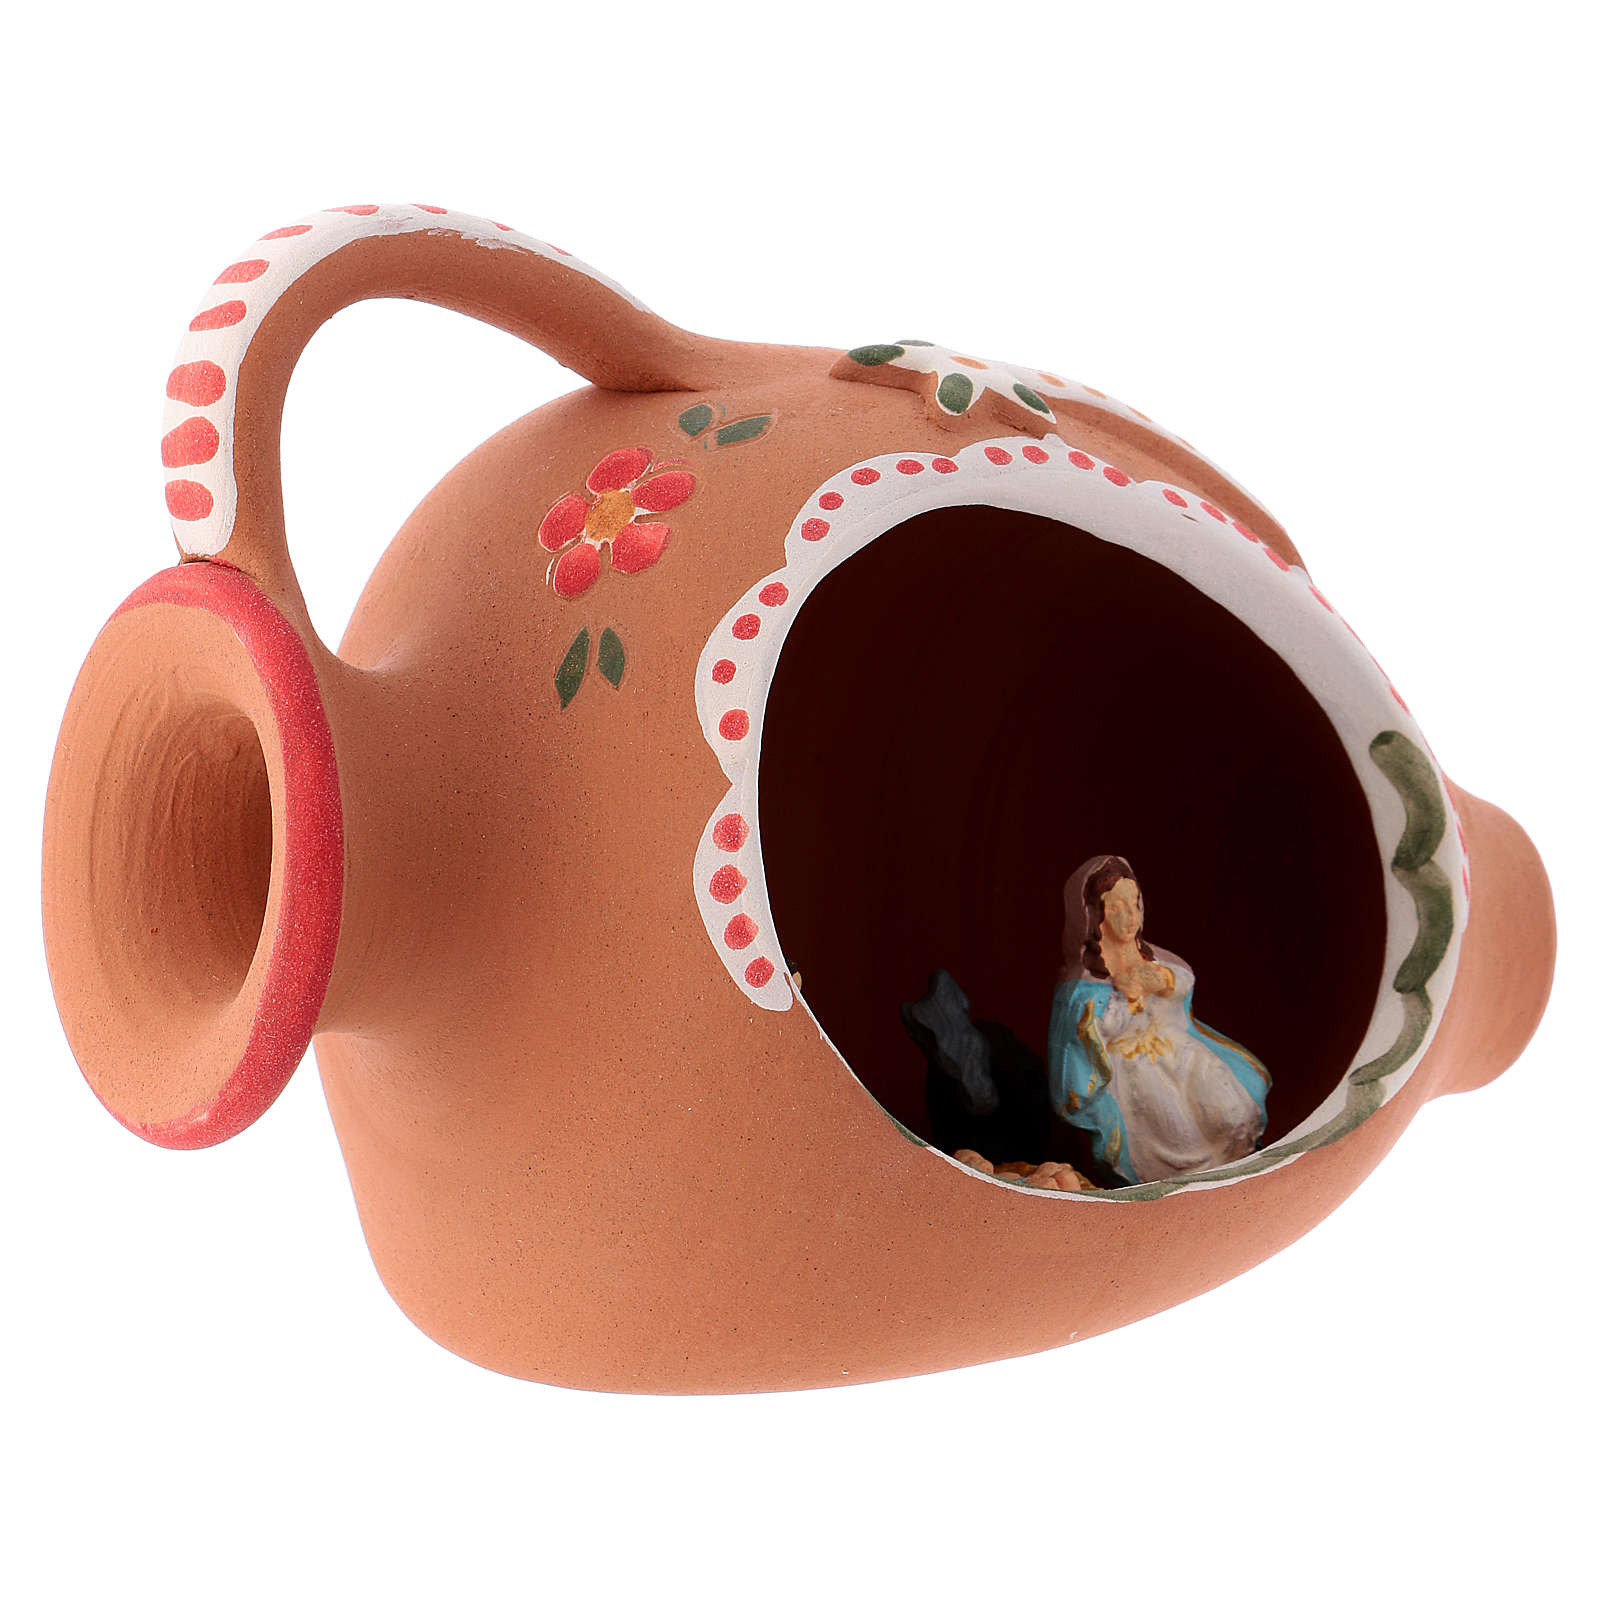 Nativity Scene of 3 cm obtained inside an amphora in terracotta 10x15x10 cm with red decoration 4